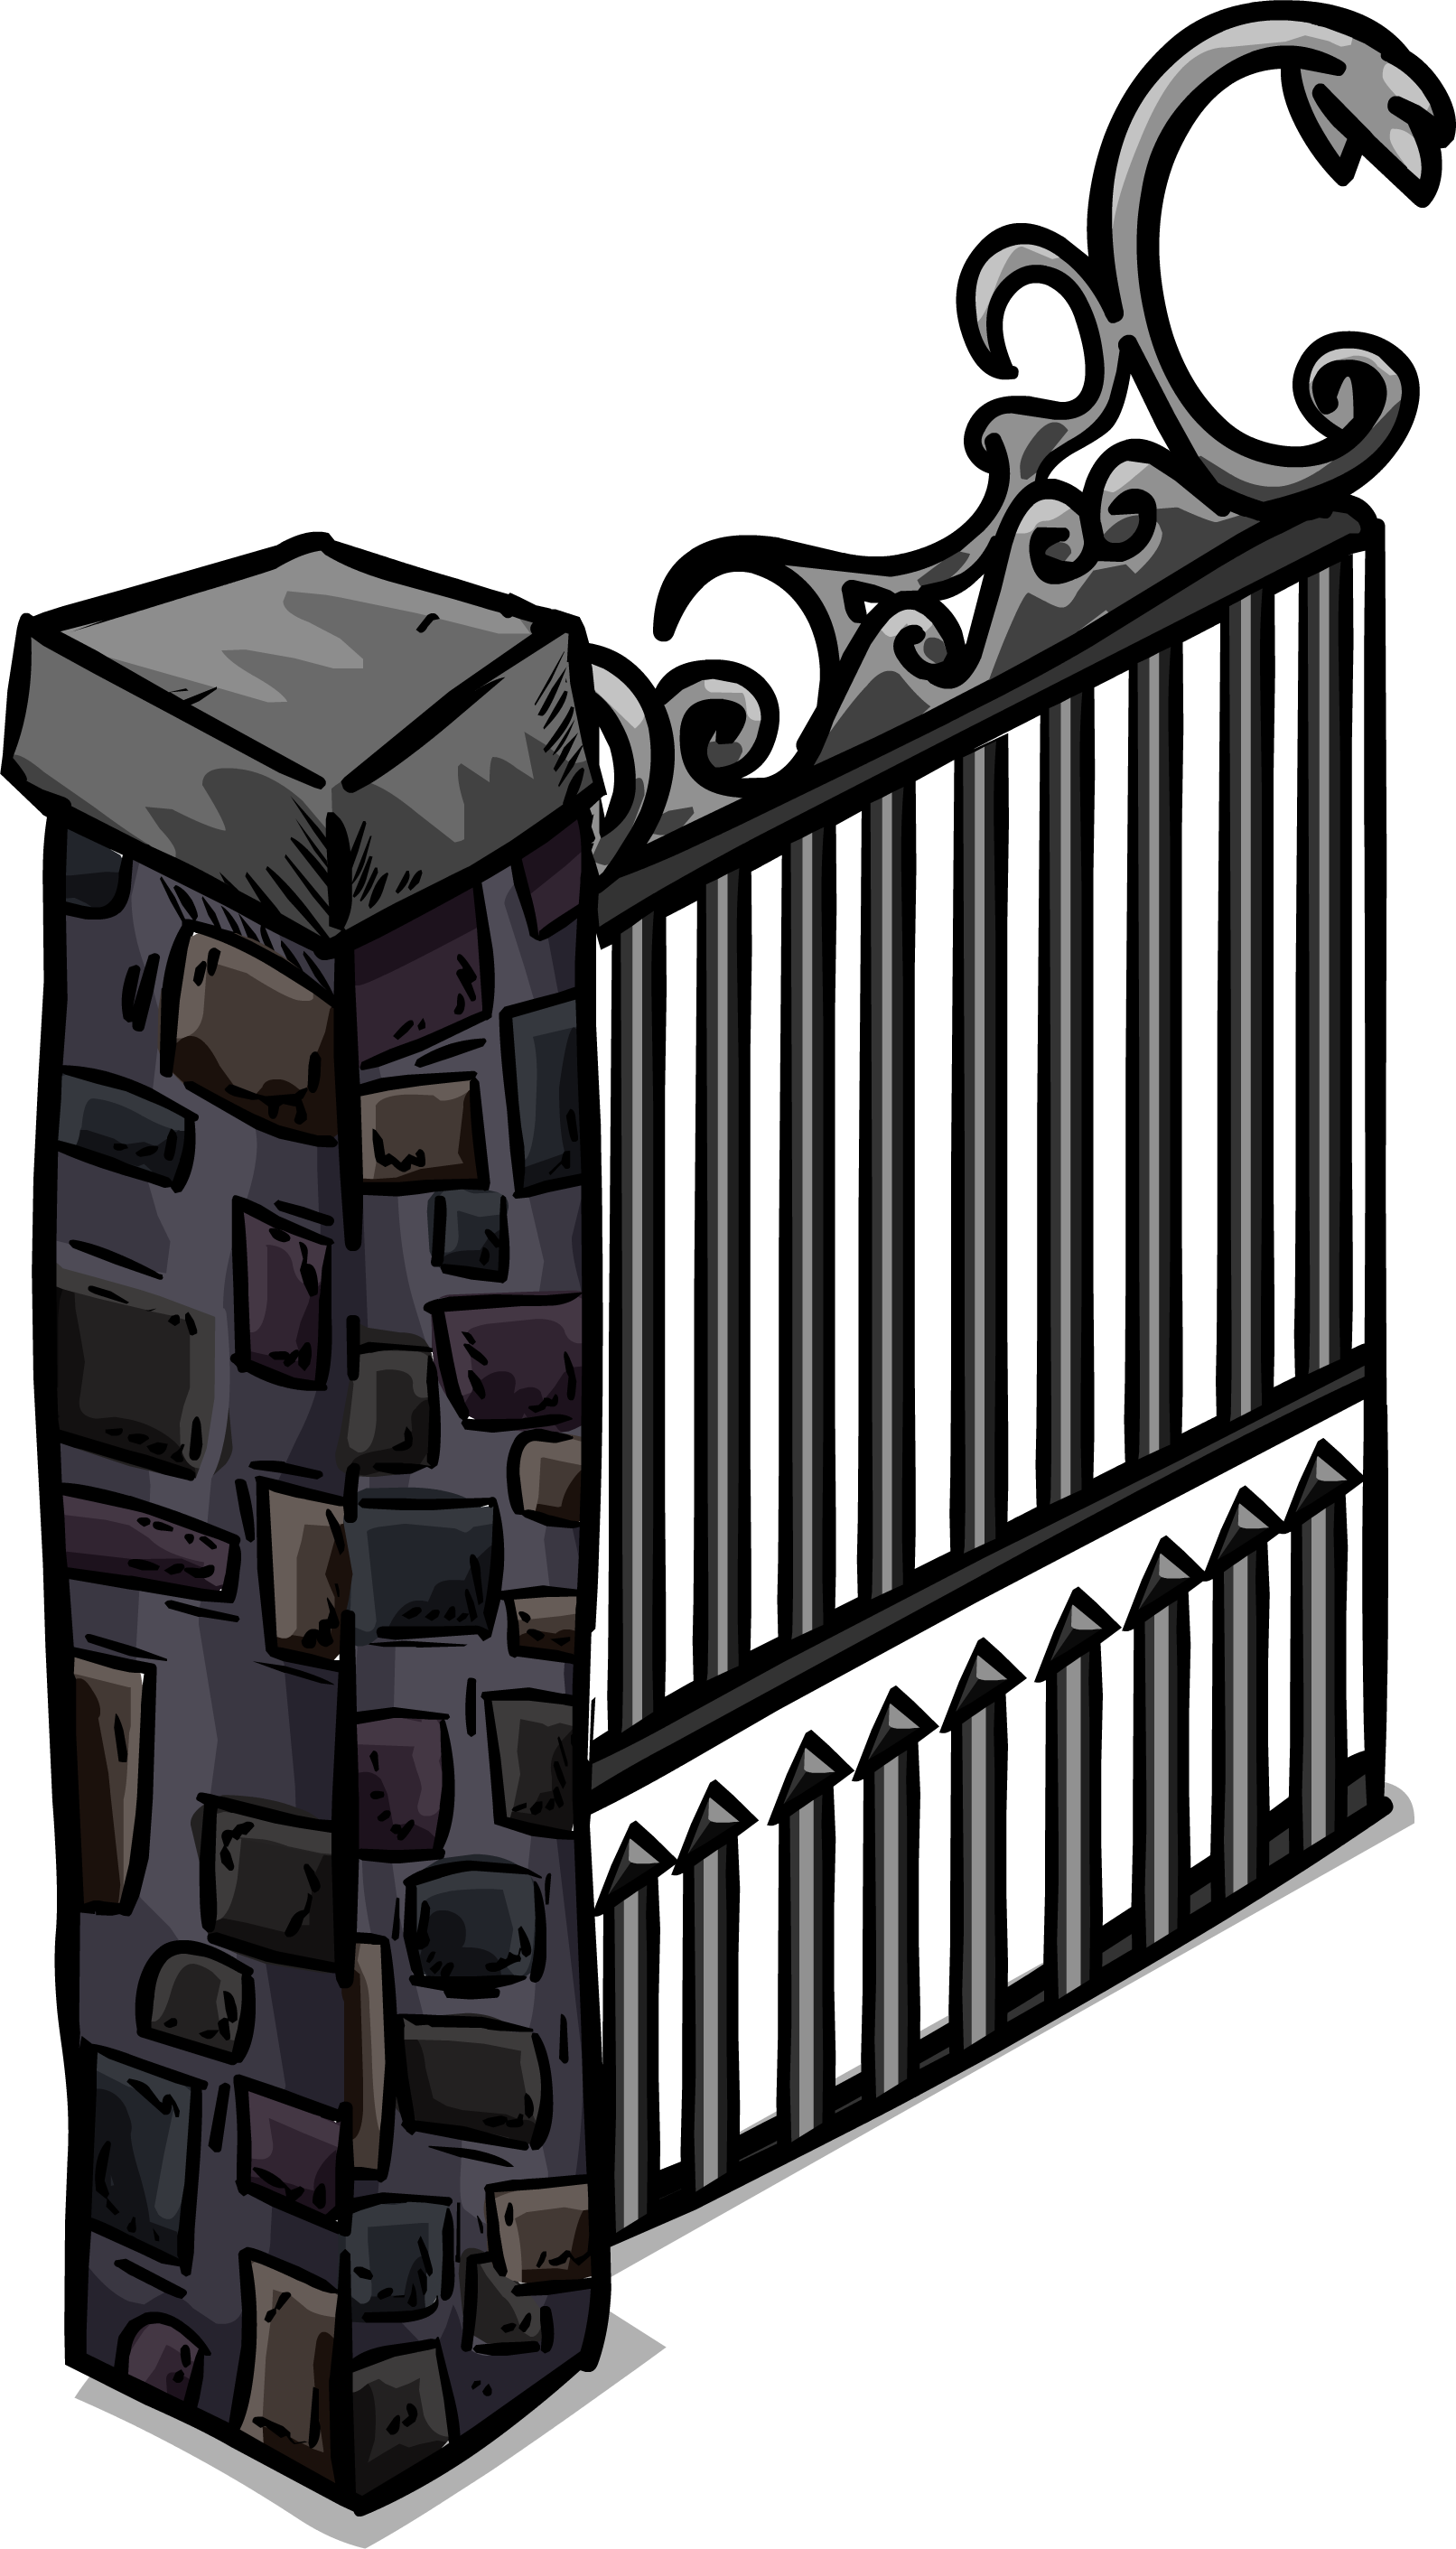 Gate clipart iron gate, Gate iron gate Transparent FREE ...